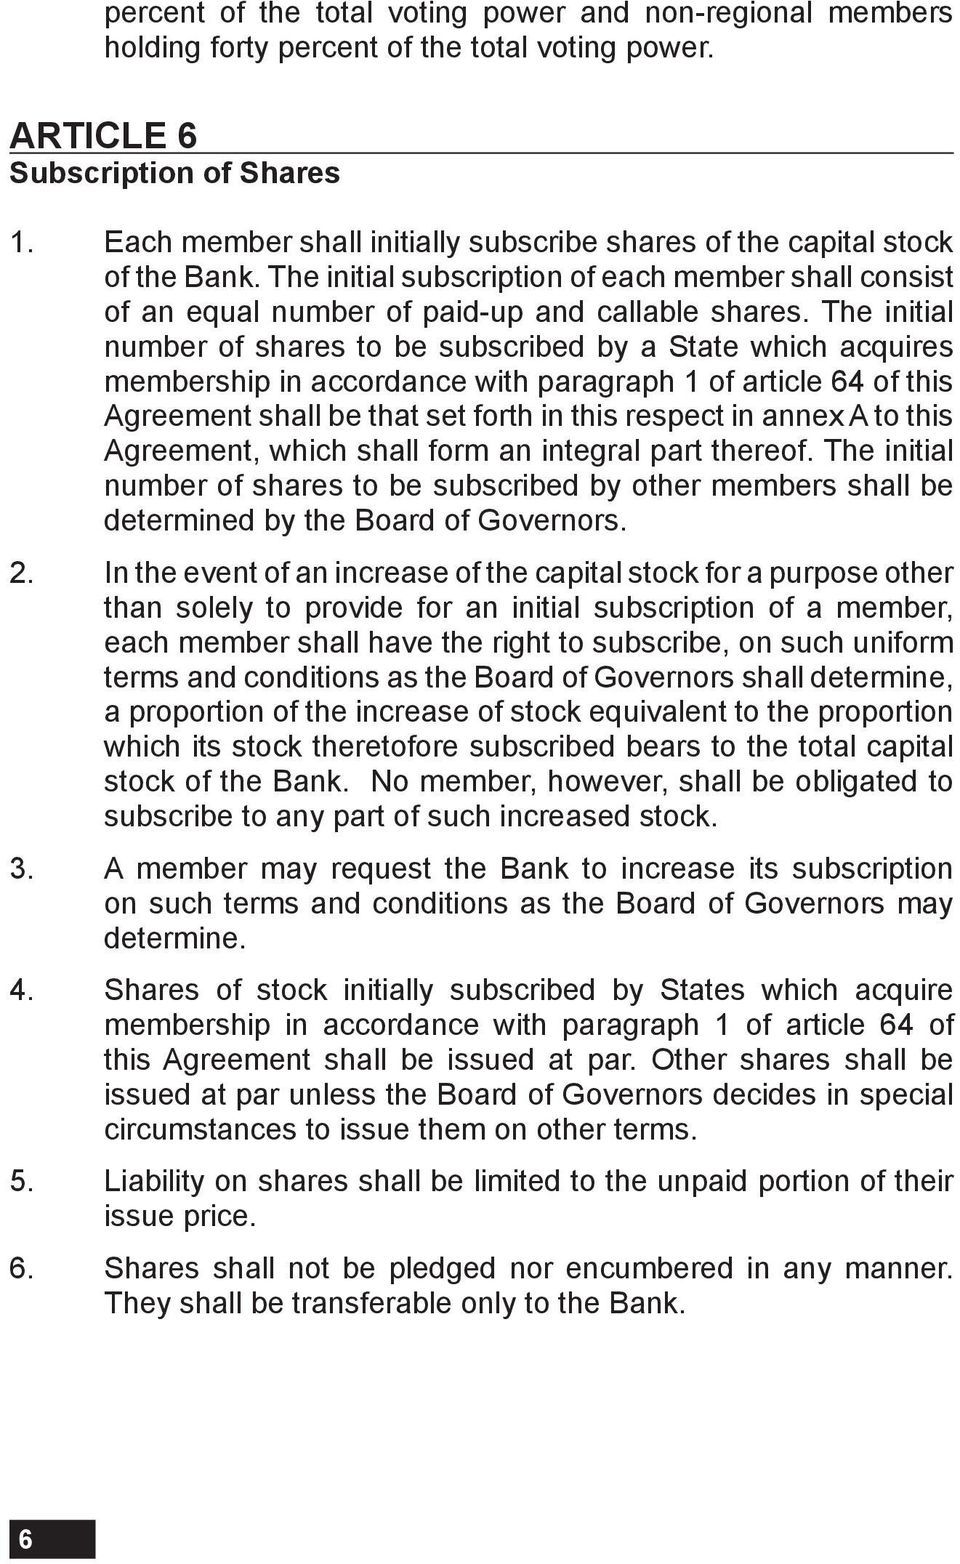 The initial number of shares to be subscribed by a State which acquires membership in accordance with paragraph 1 of article 64 of this Agreement shall be that set forth in this respect in annex A to